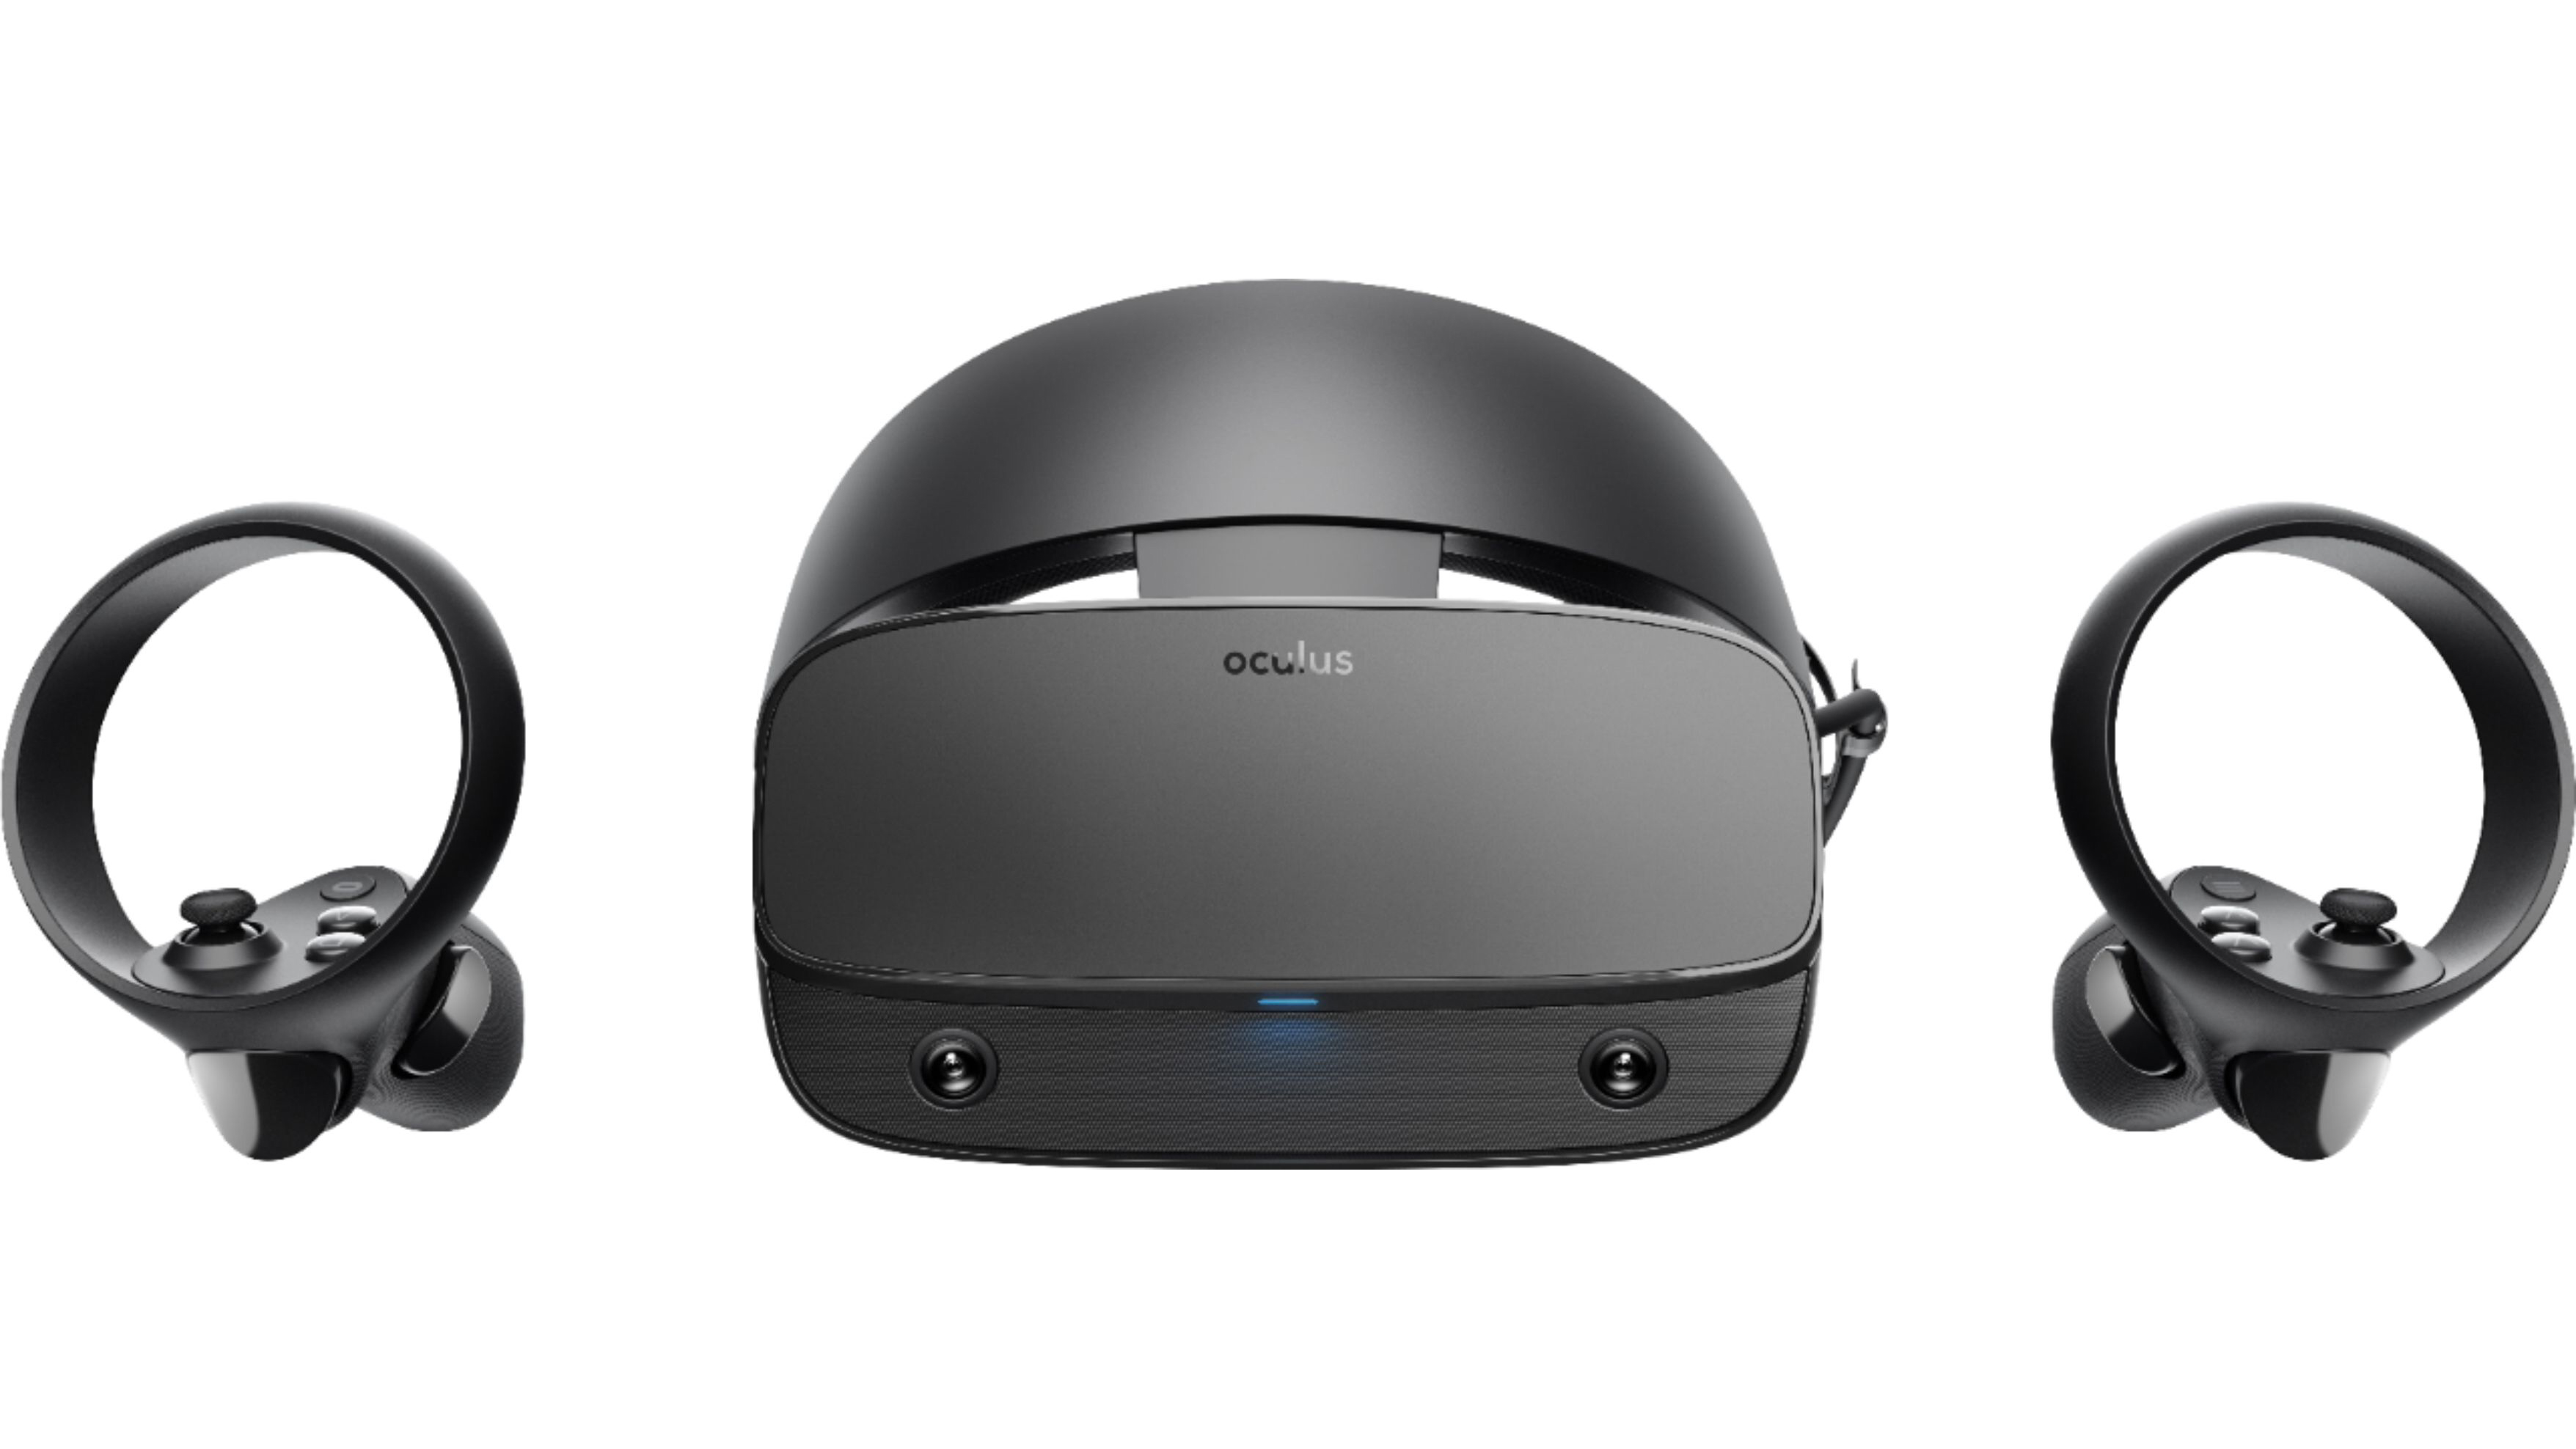 The Oculus Rift S is able to deliver 'room-scale' experiences